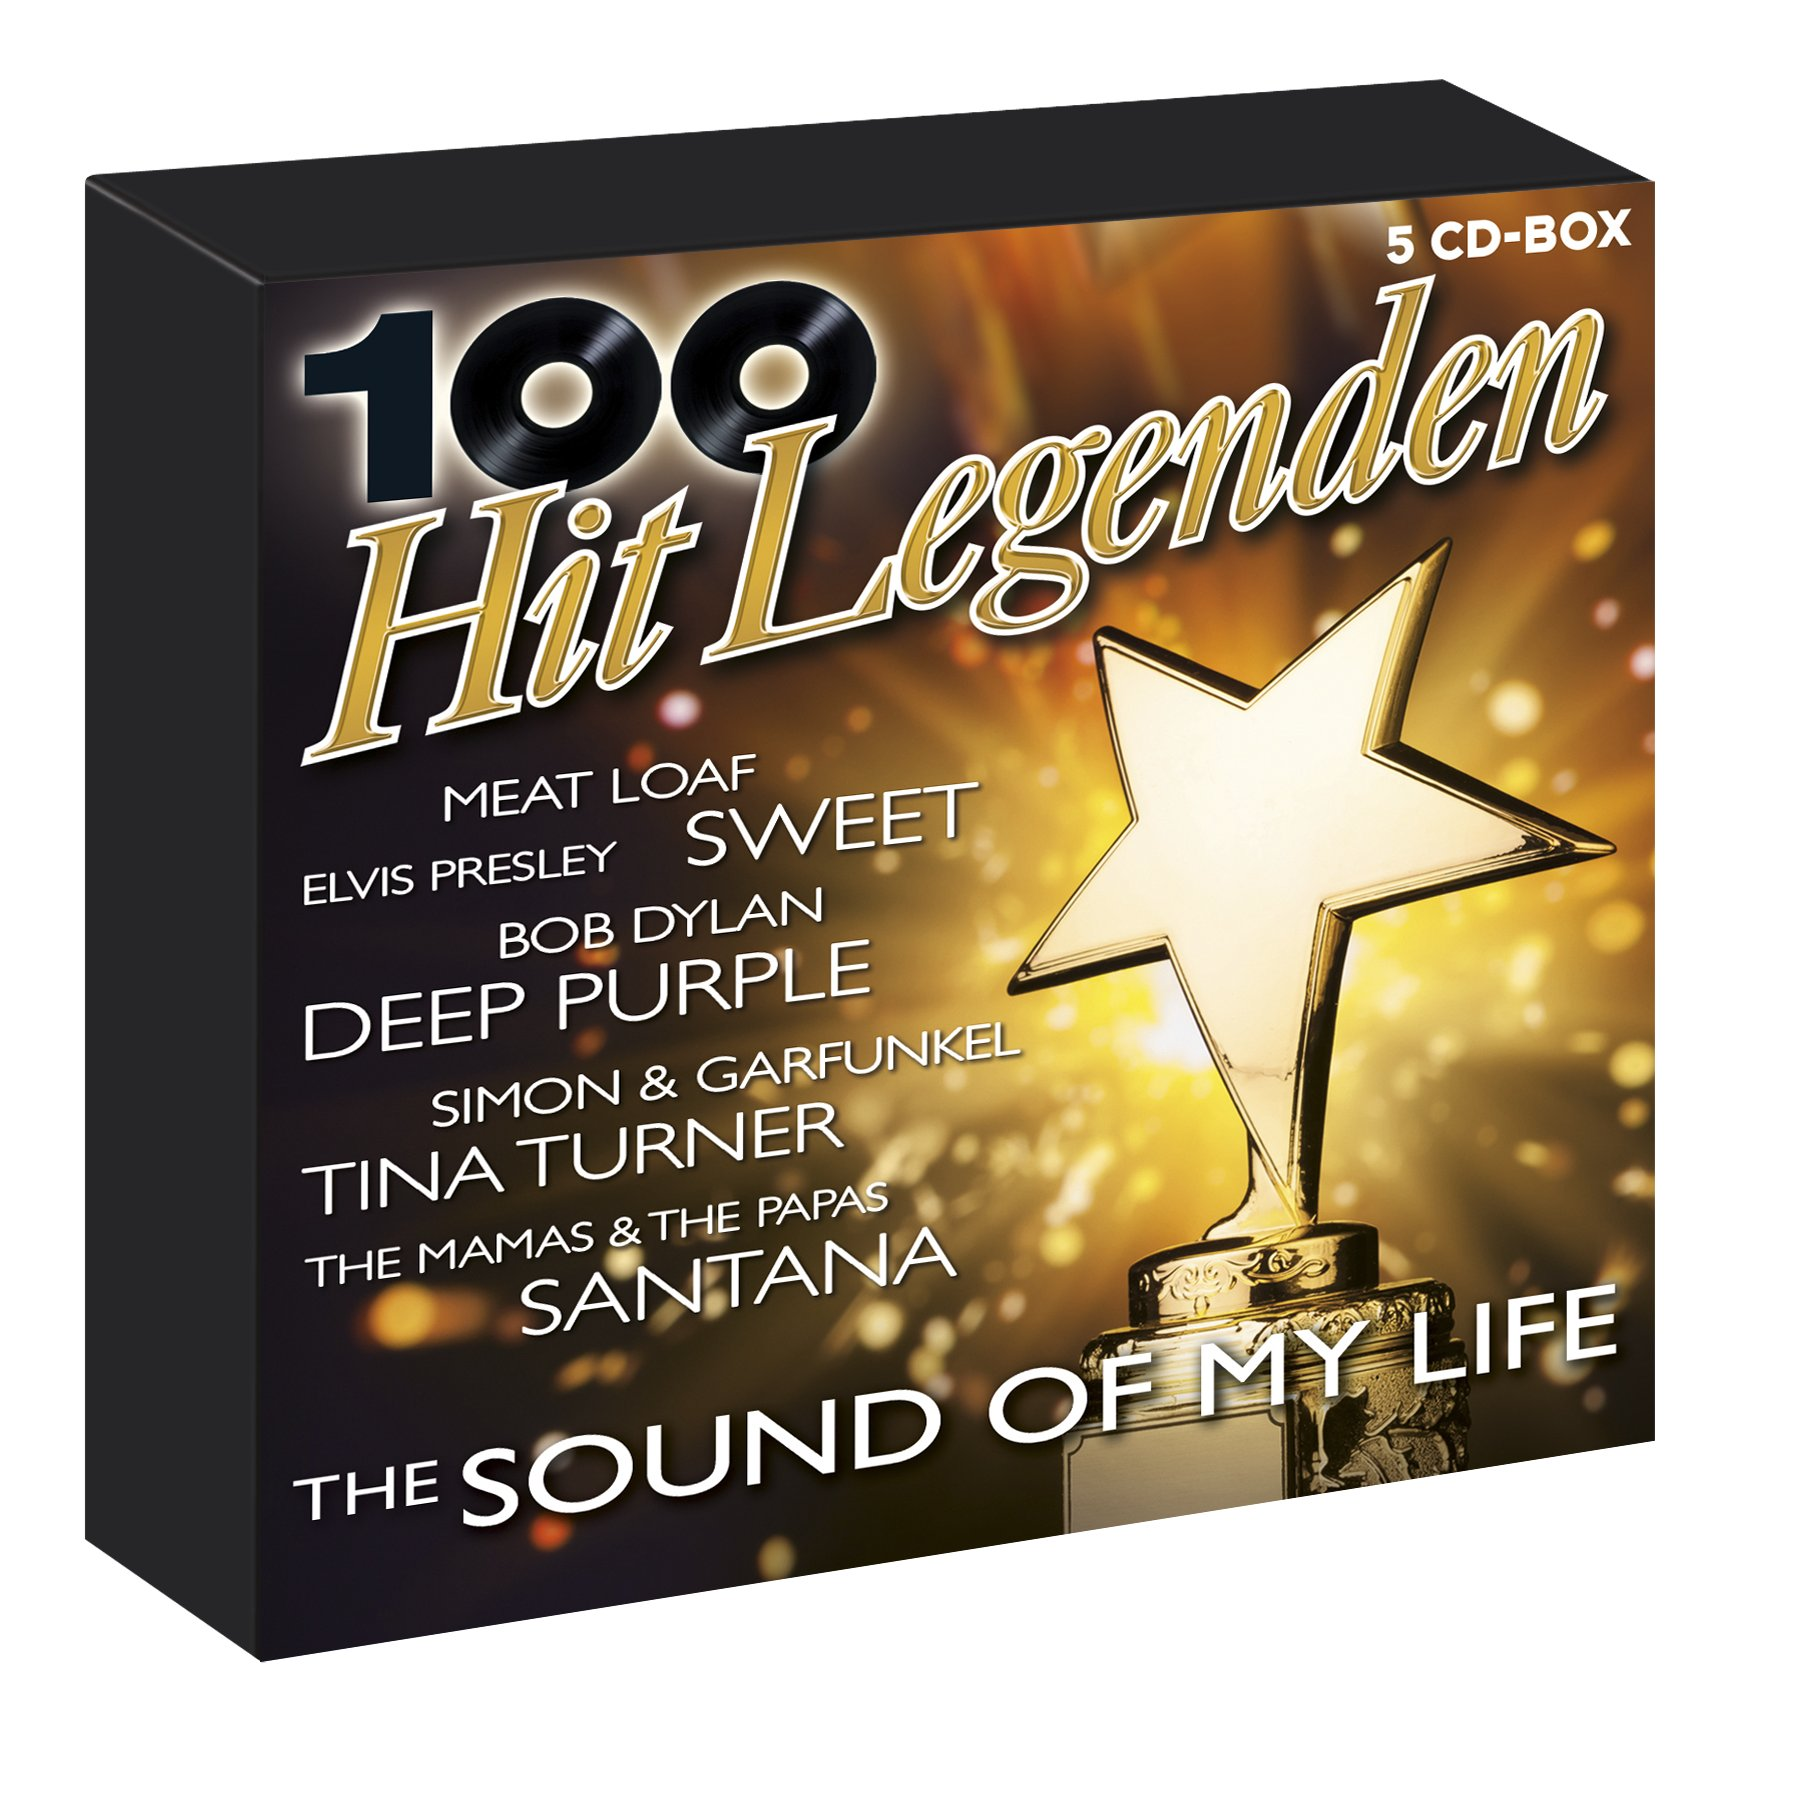 100 Oldies 2 The Sound Of My Life Exklusive 5CD Box